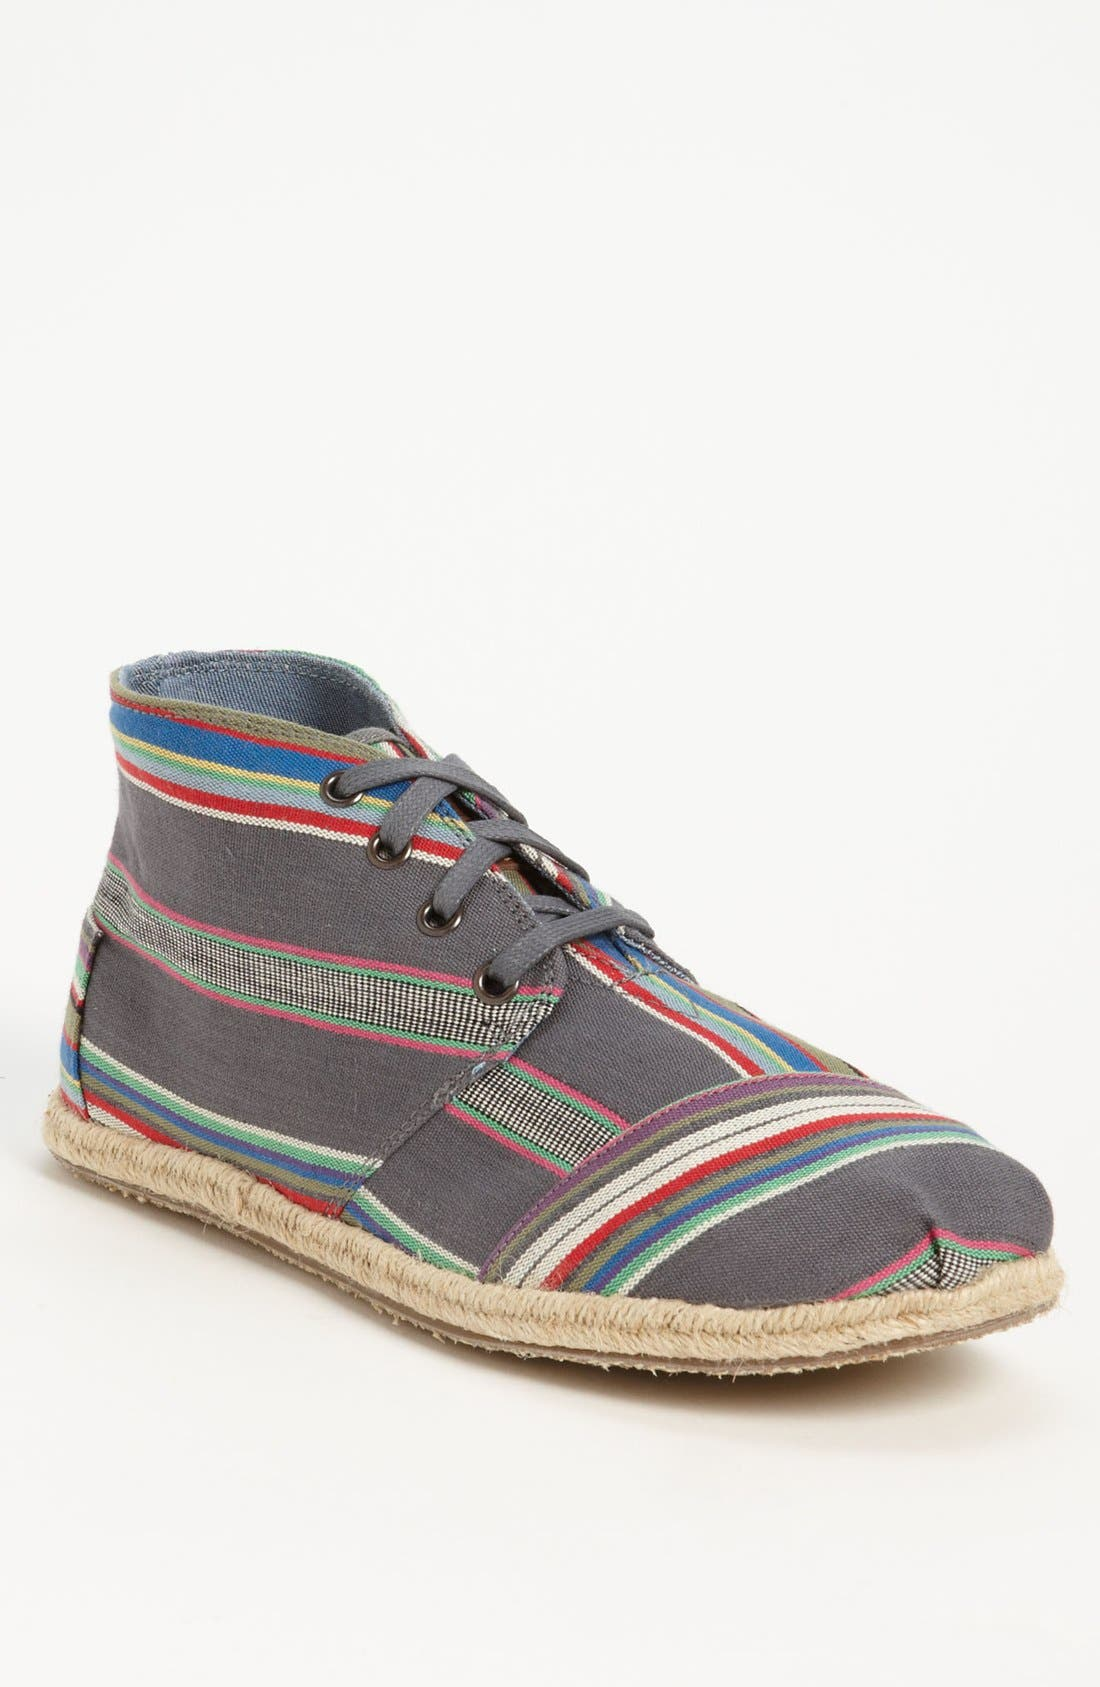 Alternate Image 1 Selected - TOMS 'Botas - Desert' Denim Chukka Boot (Men)